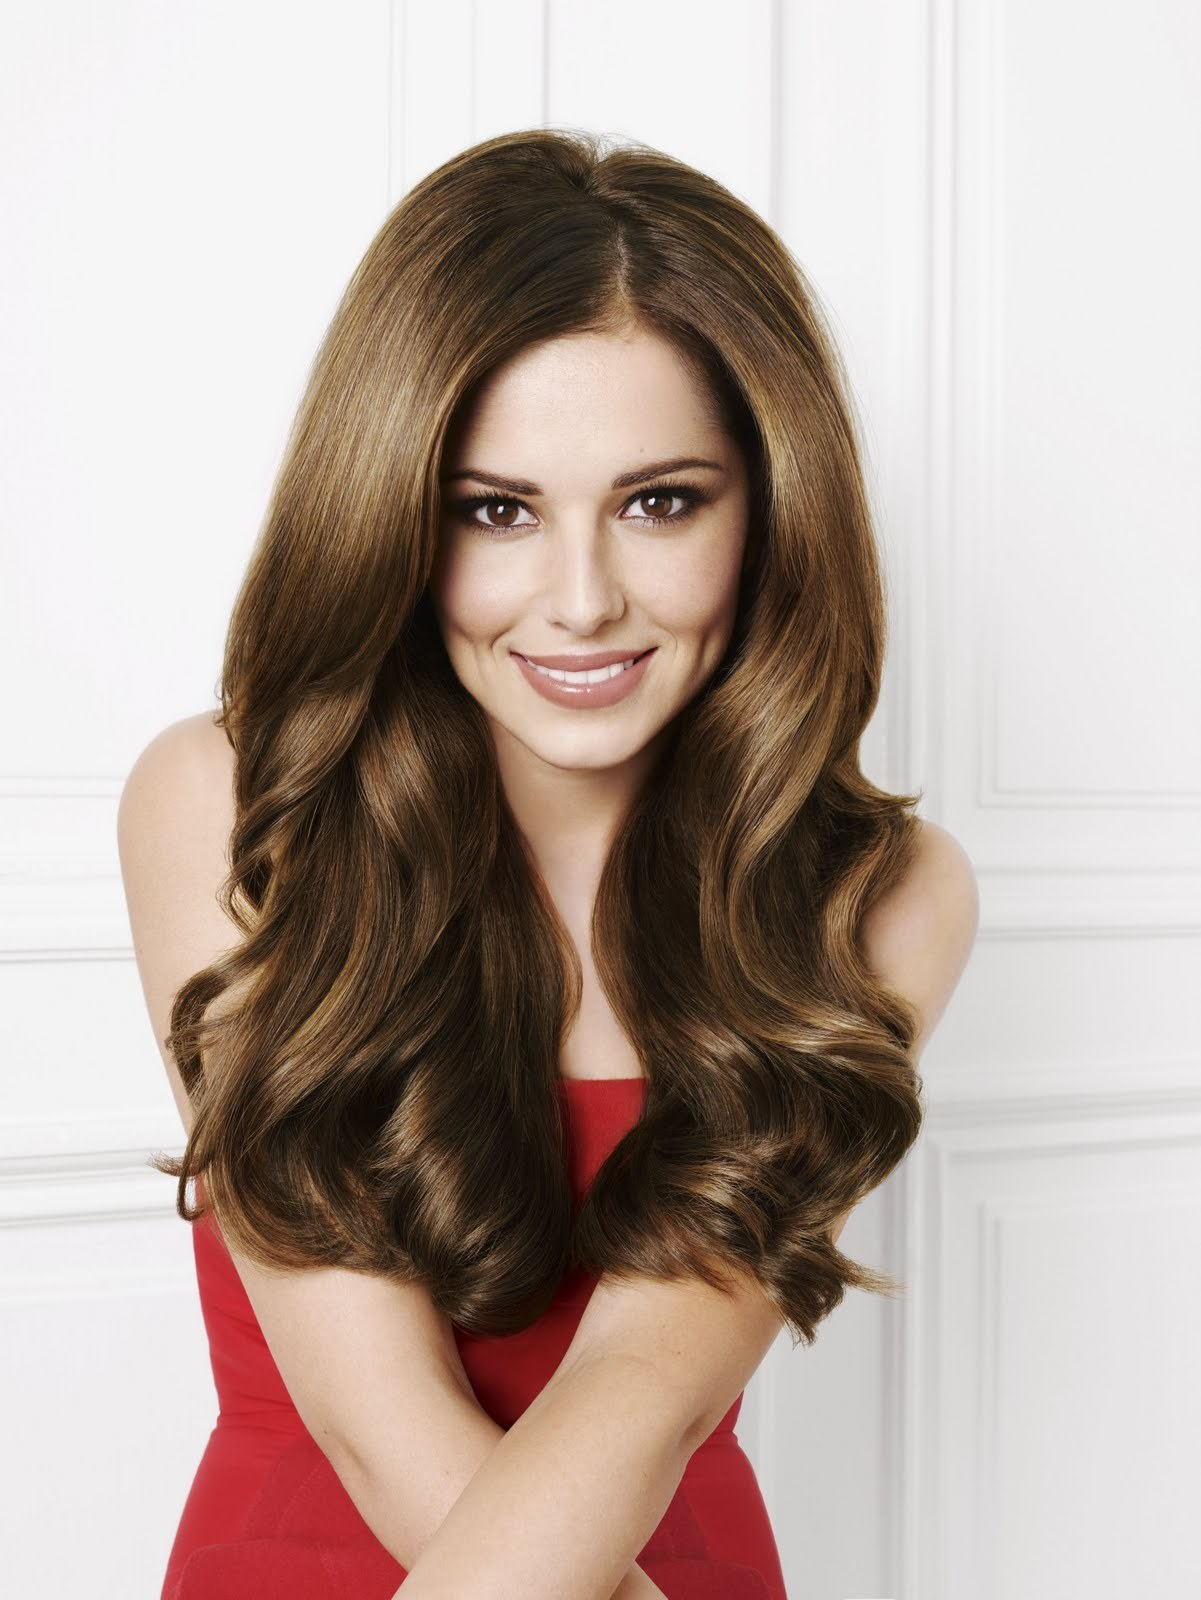 Cheryl Cheryl Cole Photo 8433483 Fanpop